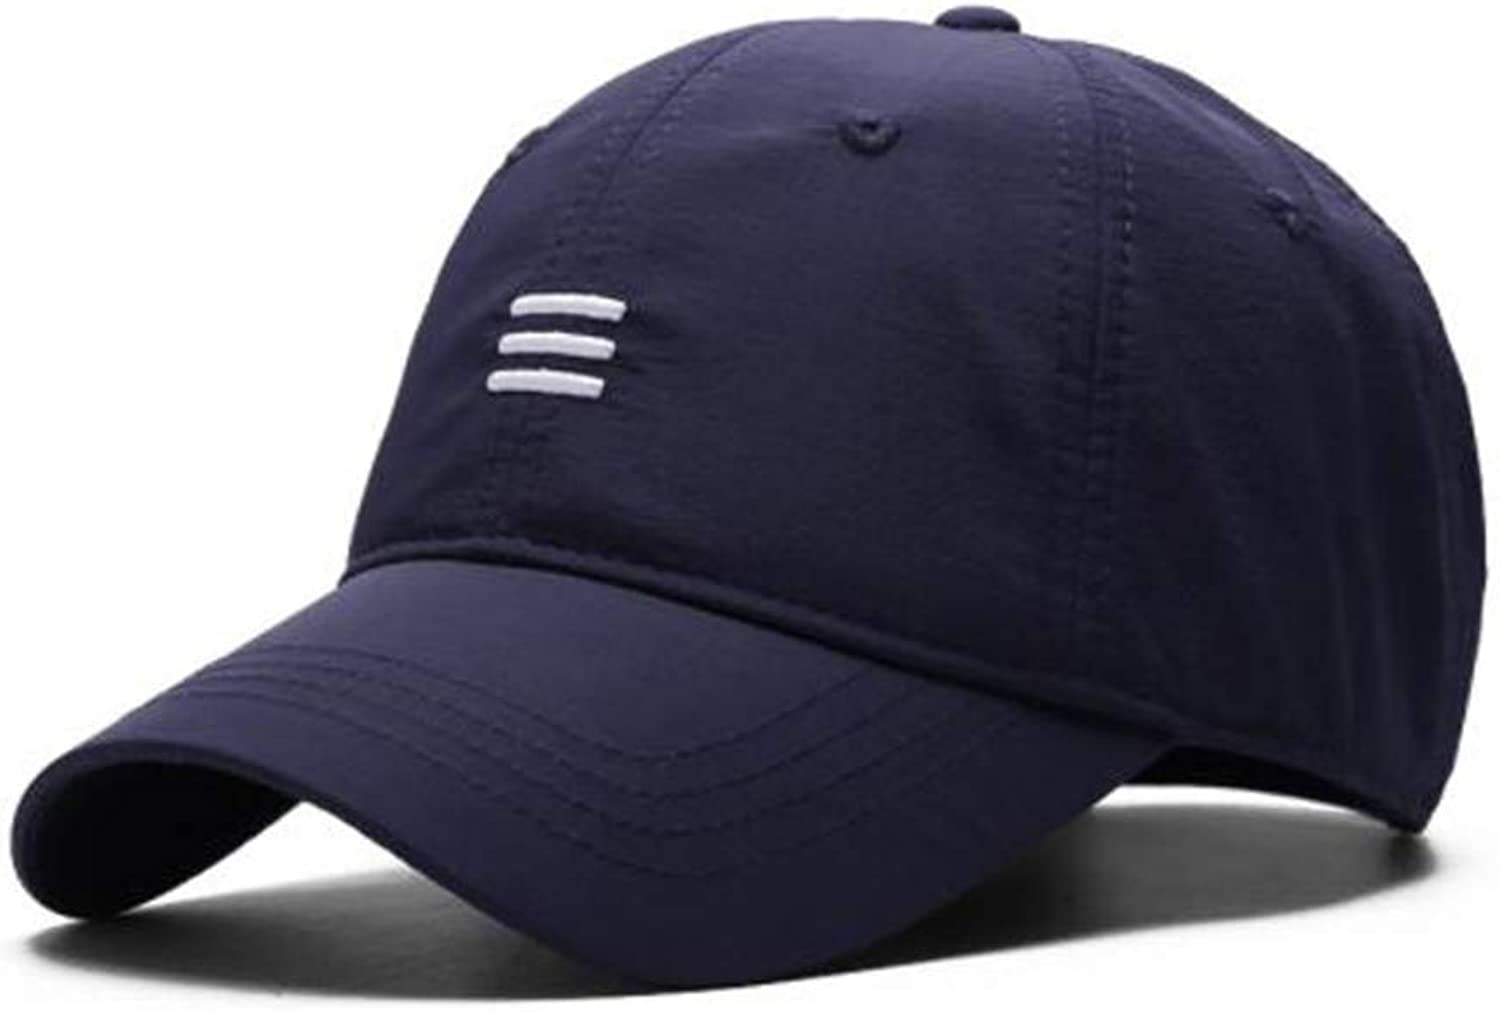 FH Summer Big Head Baseball Cap Outdoor Korean Version of The QuickDrying Mesh Cap Large Size Shade Breathable Cap (color   blueee)